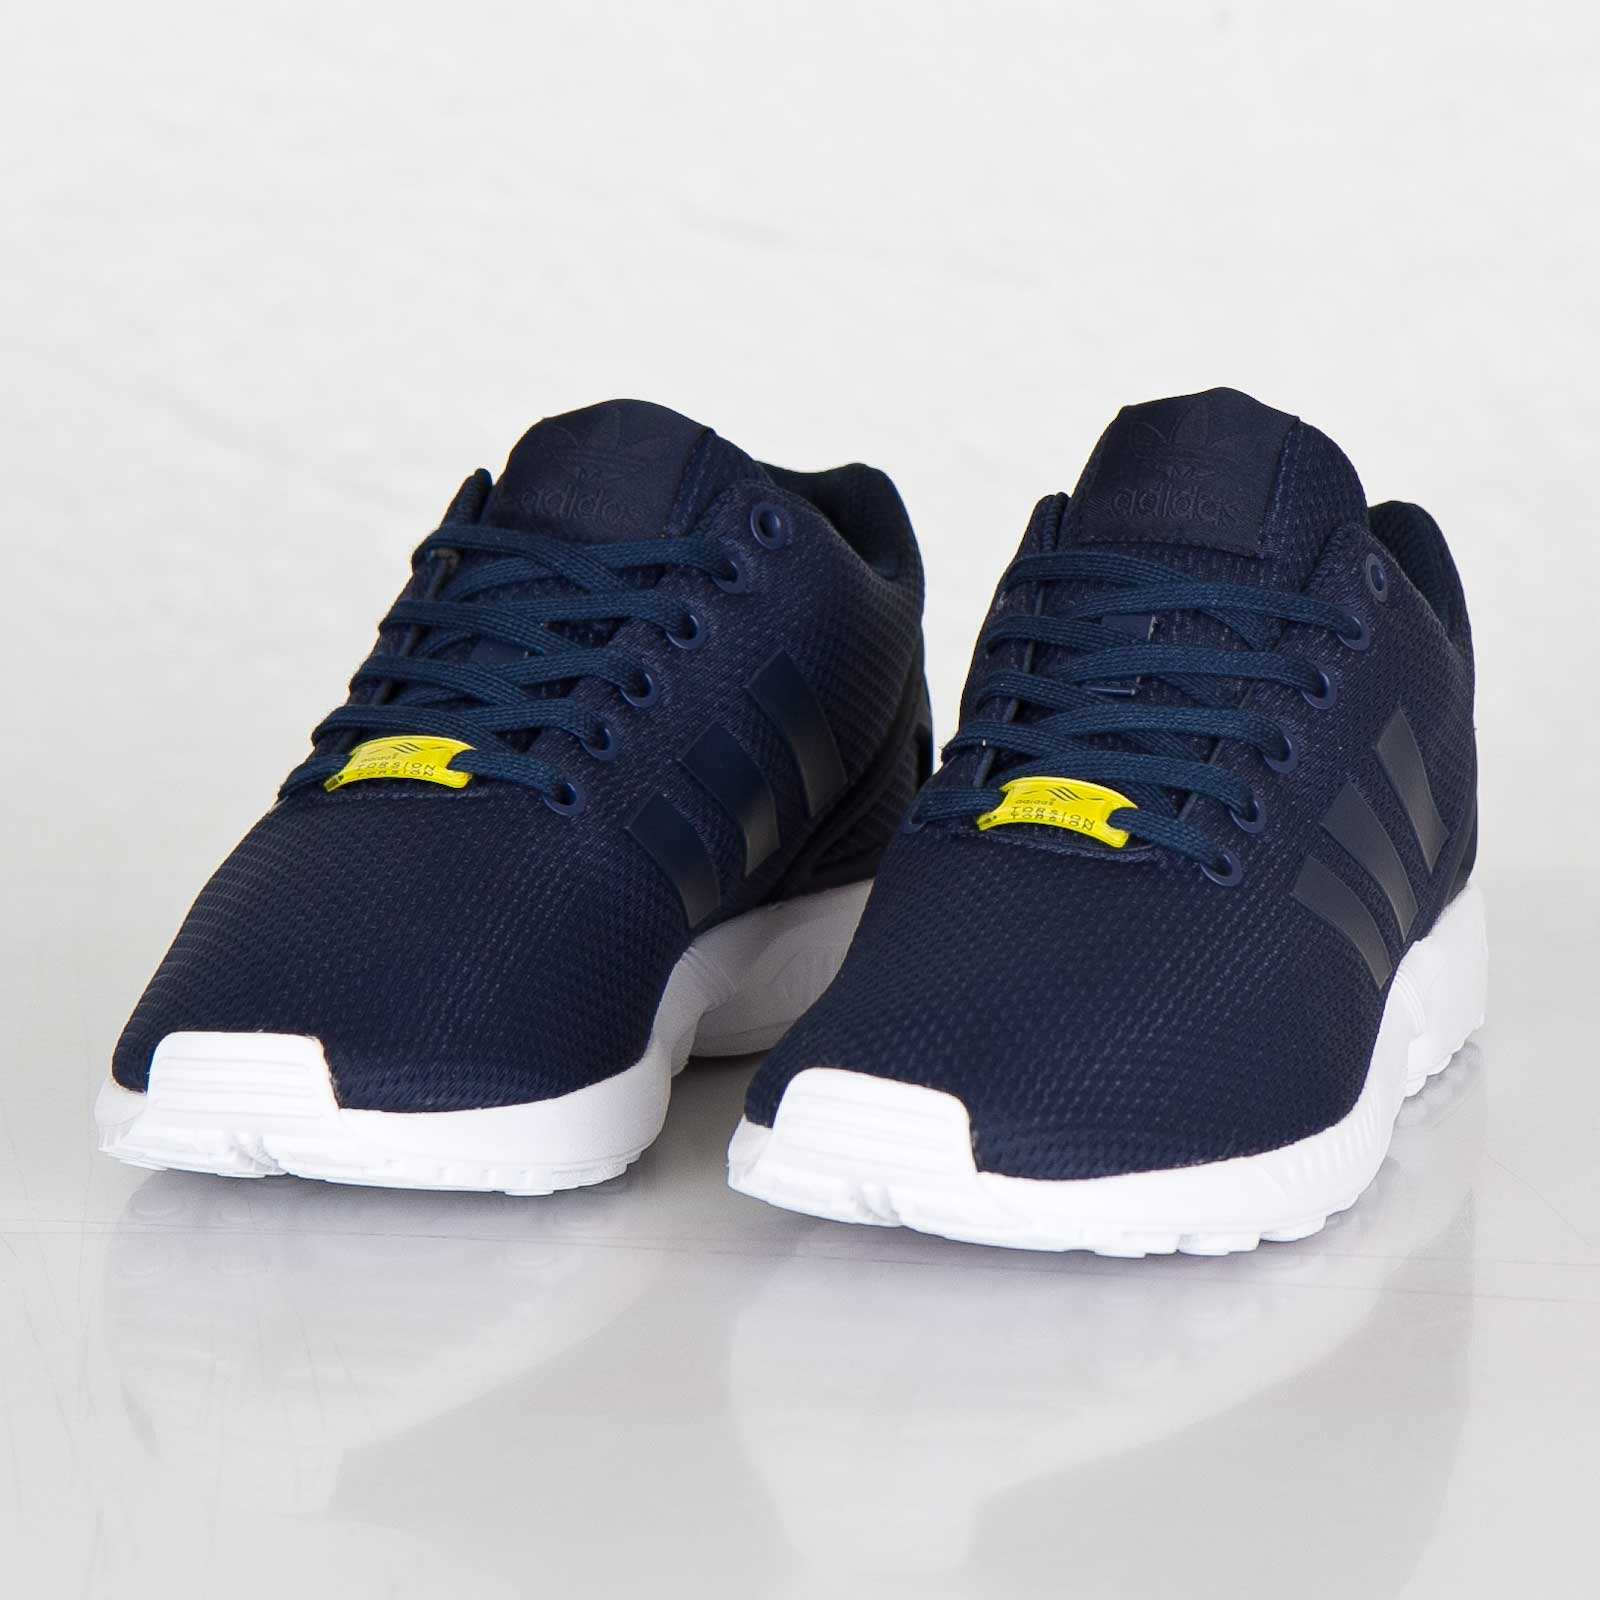 adidas zx flux navy Sale | Up to OFF63% Discounts